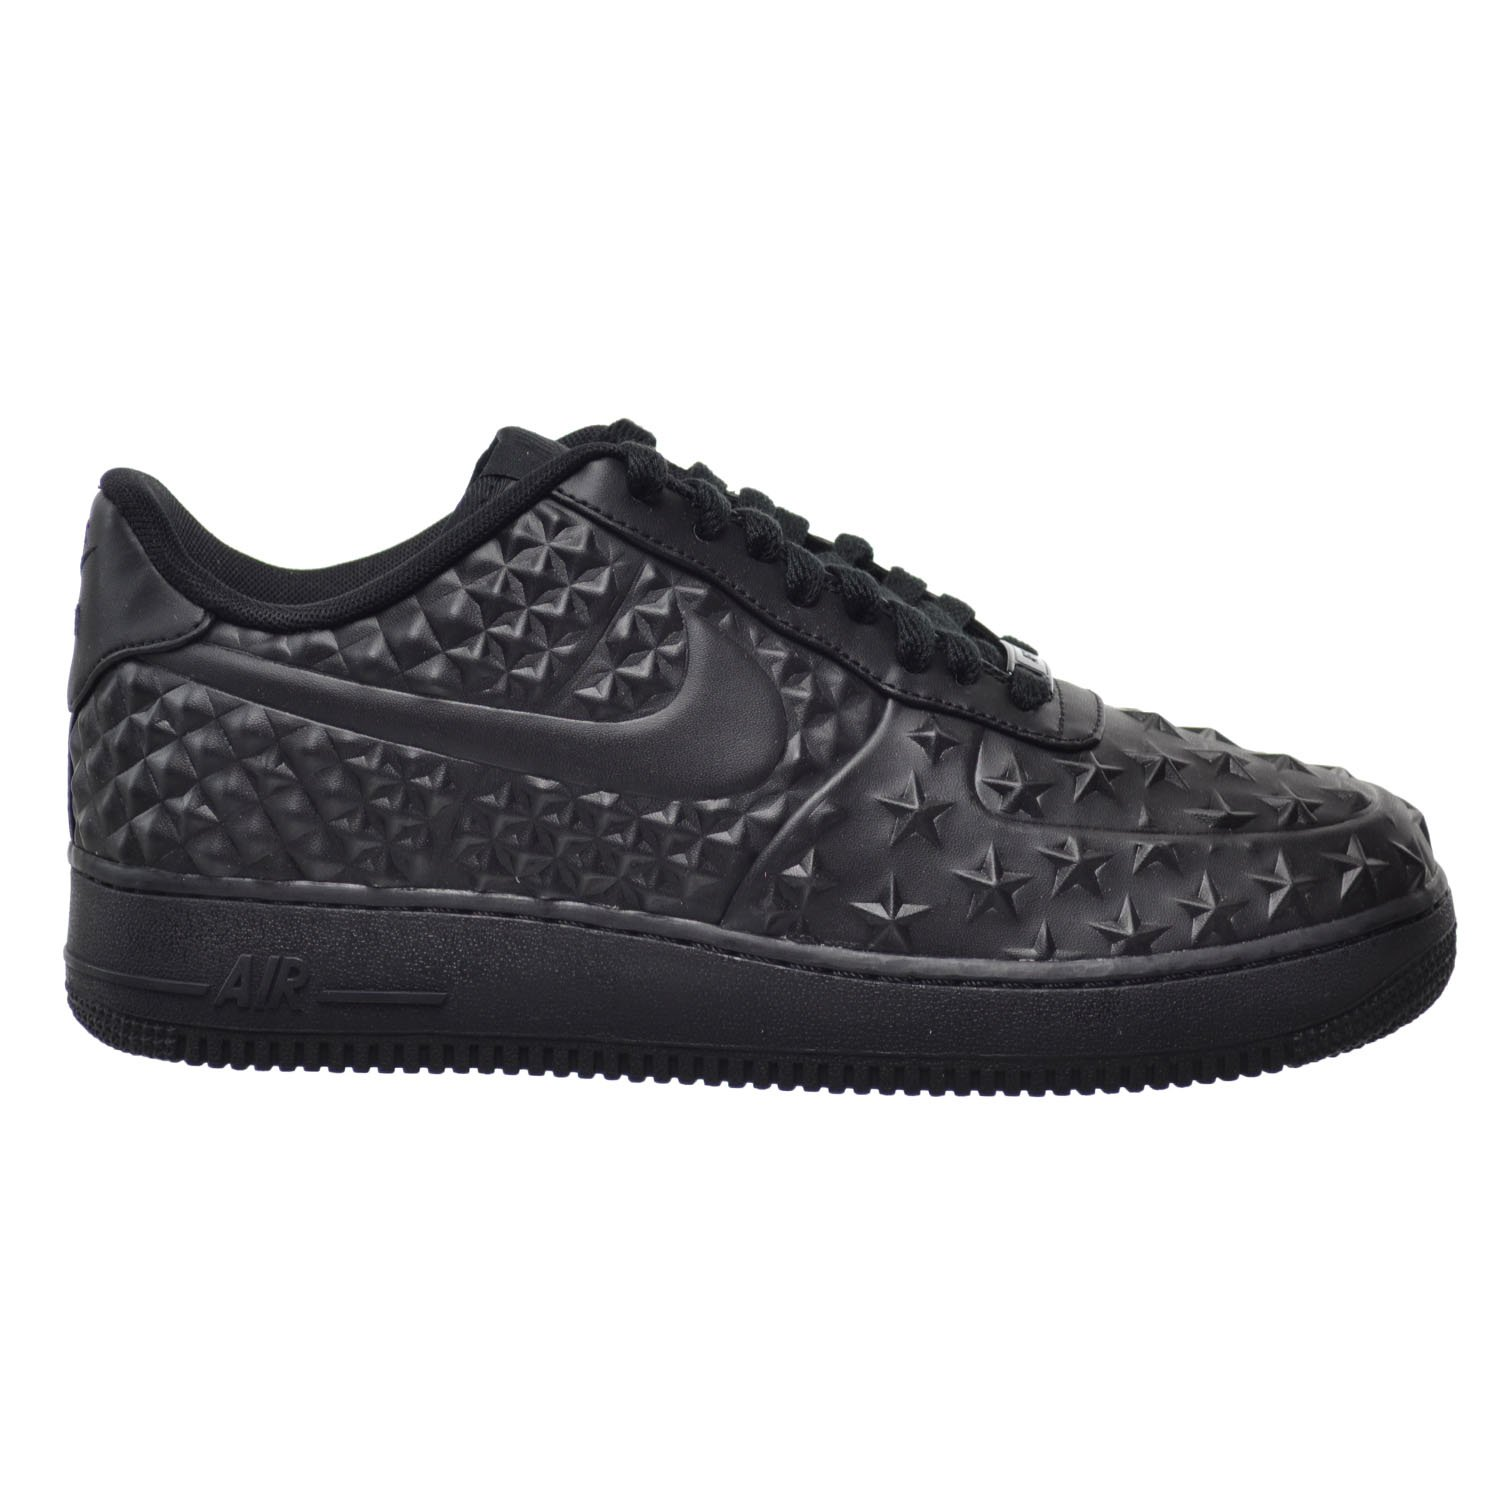 Nike Air Force 1 LV8 Men Round Toe Leather Sneakers